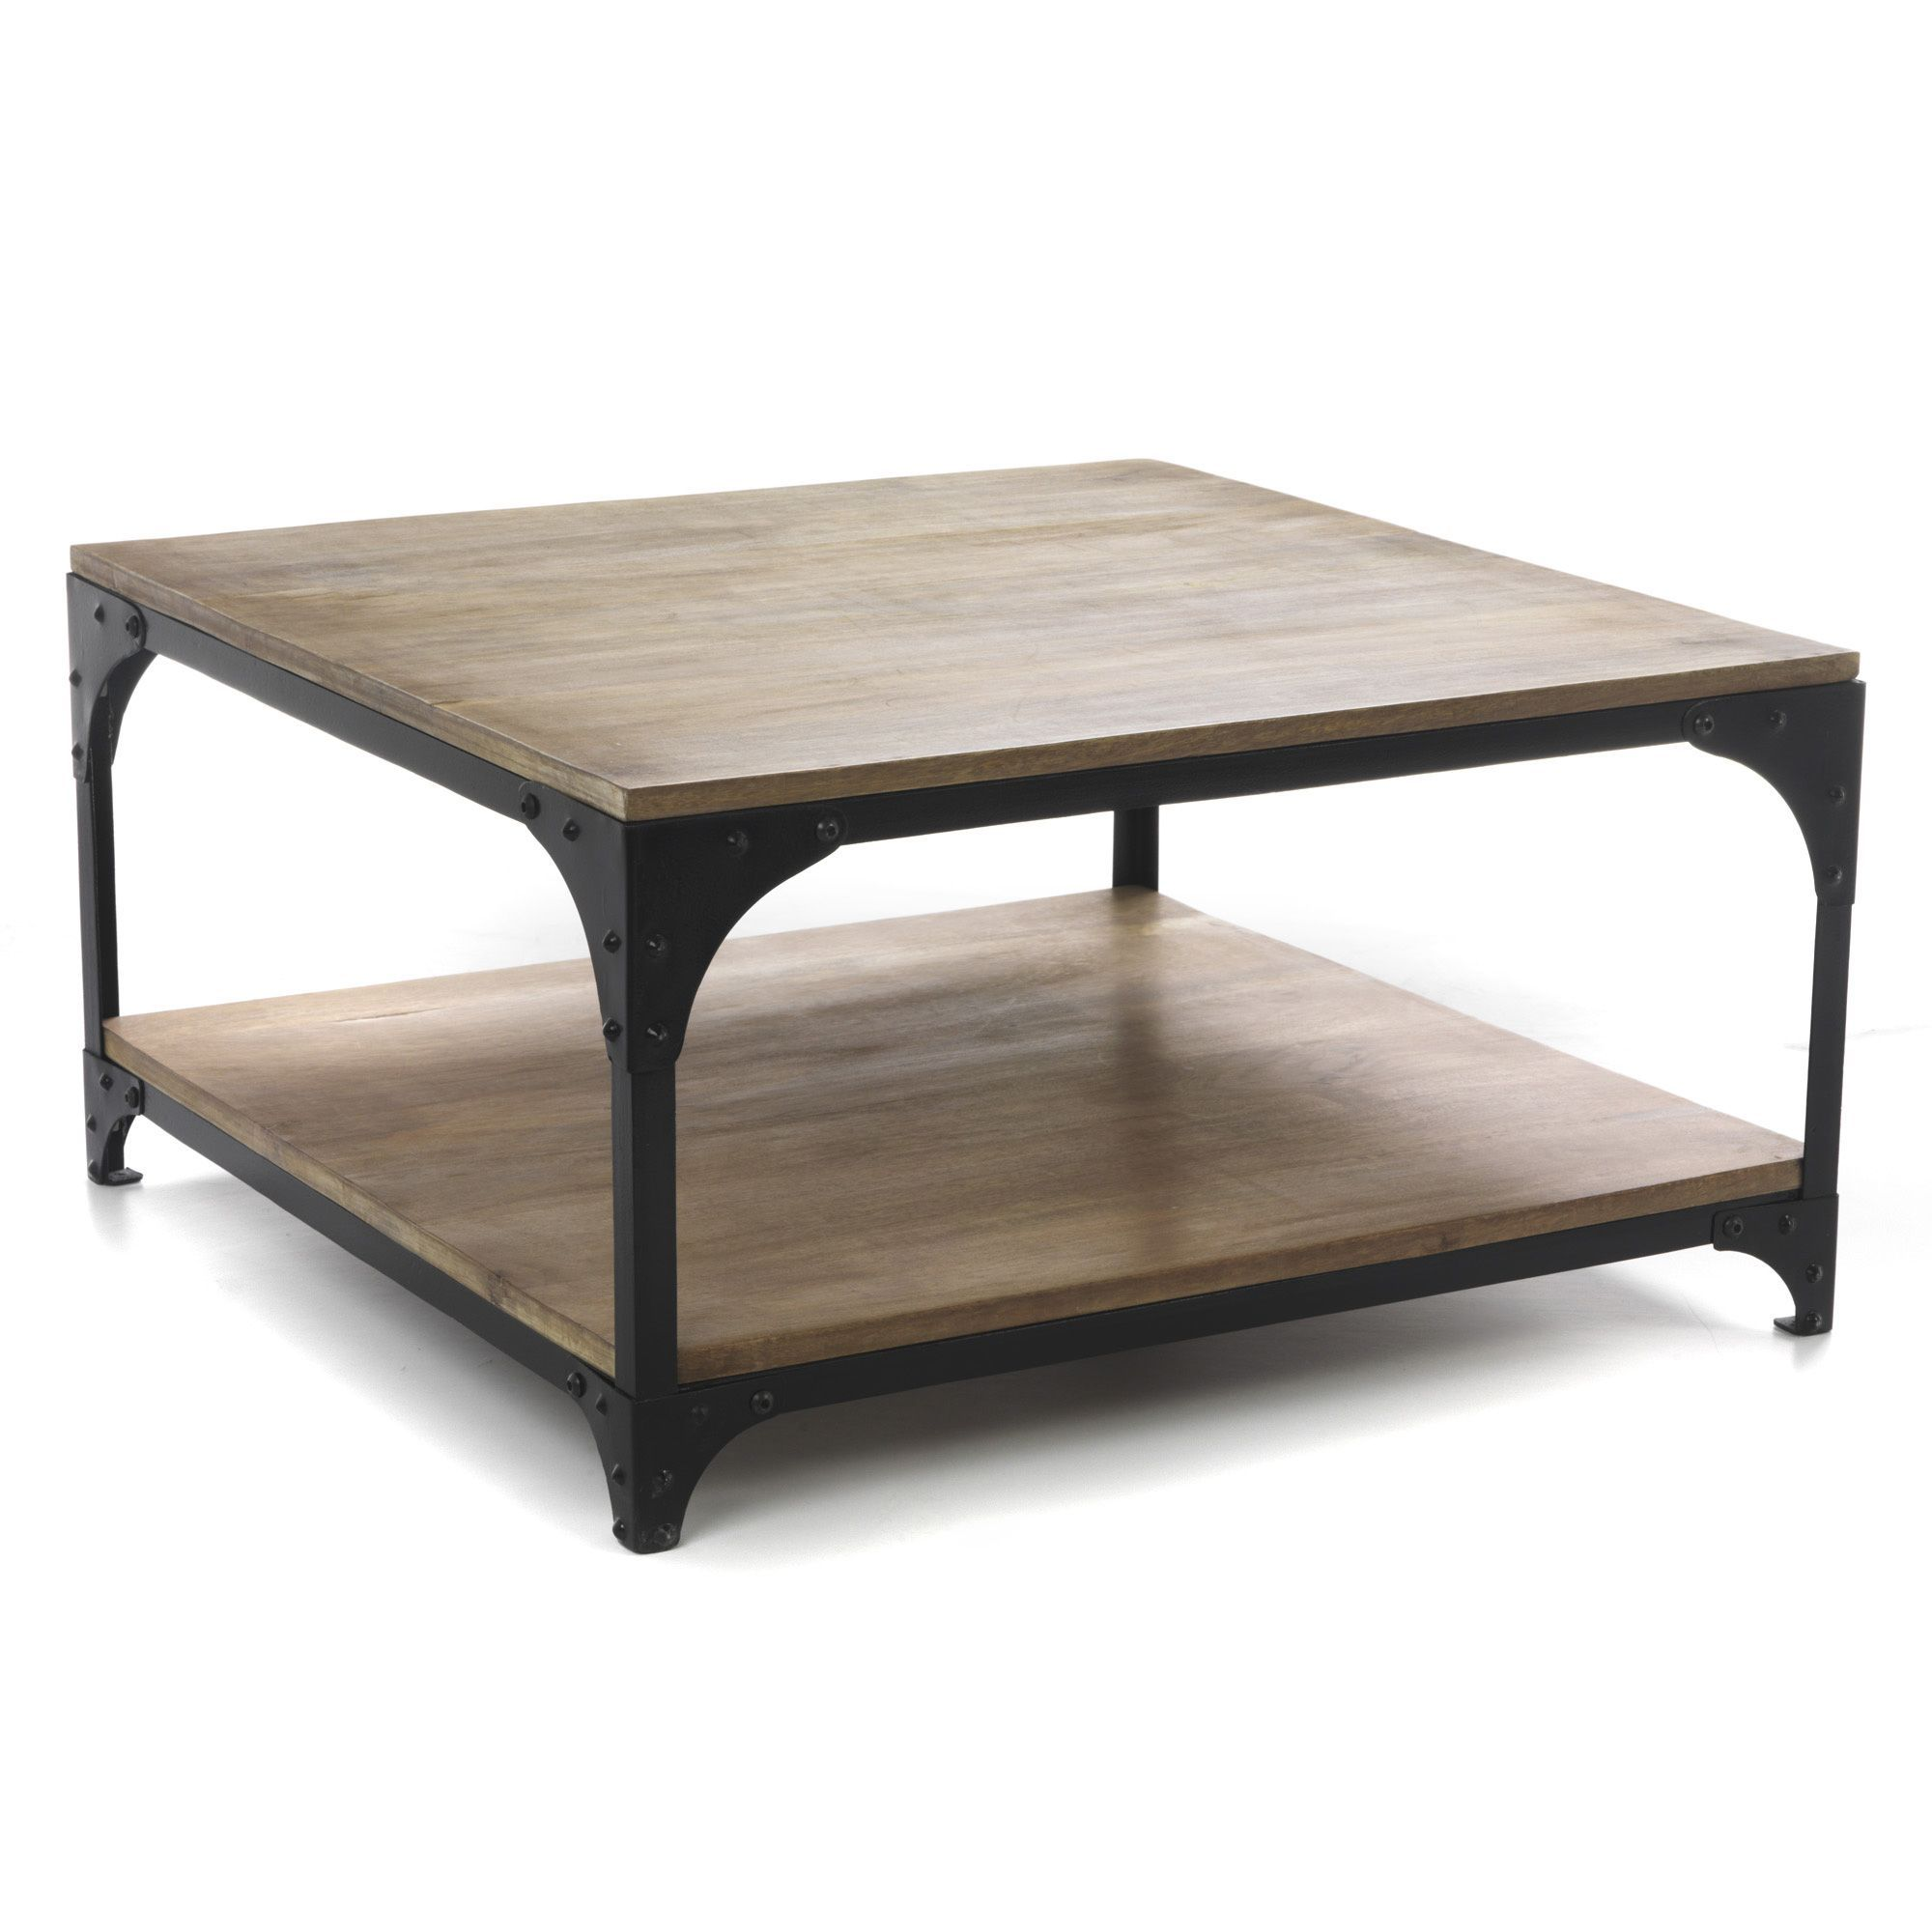 Table basse carr e industrielle naturel new ately les tables basses tab - Salle a manger alinea ...